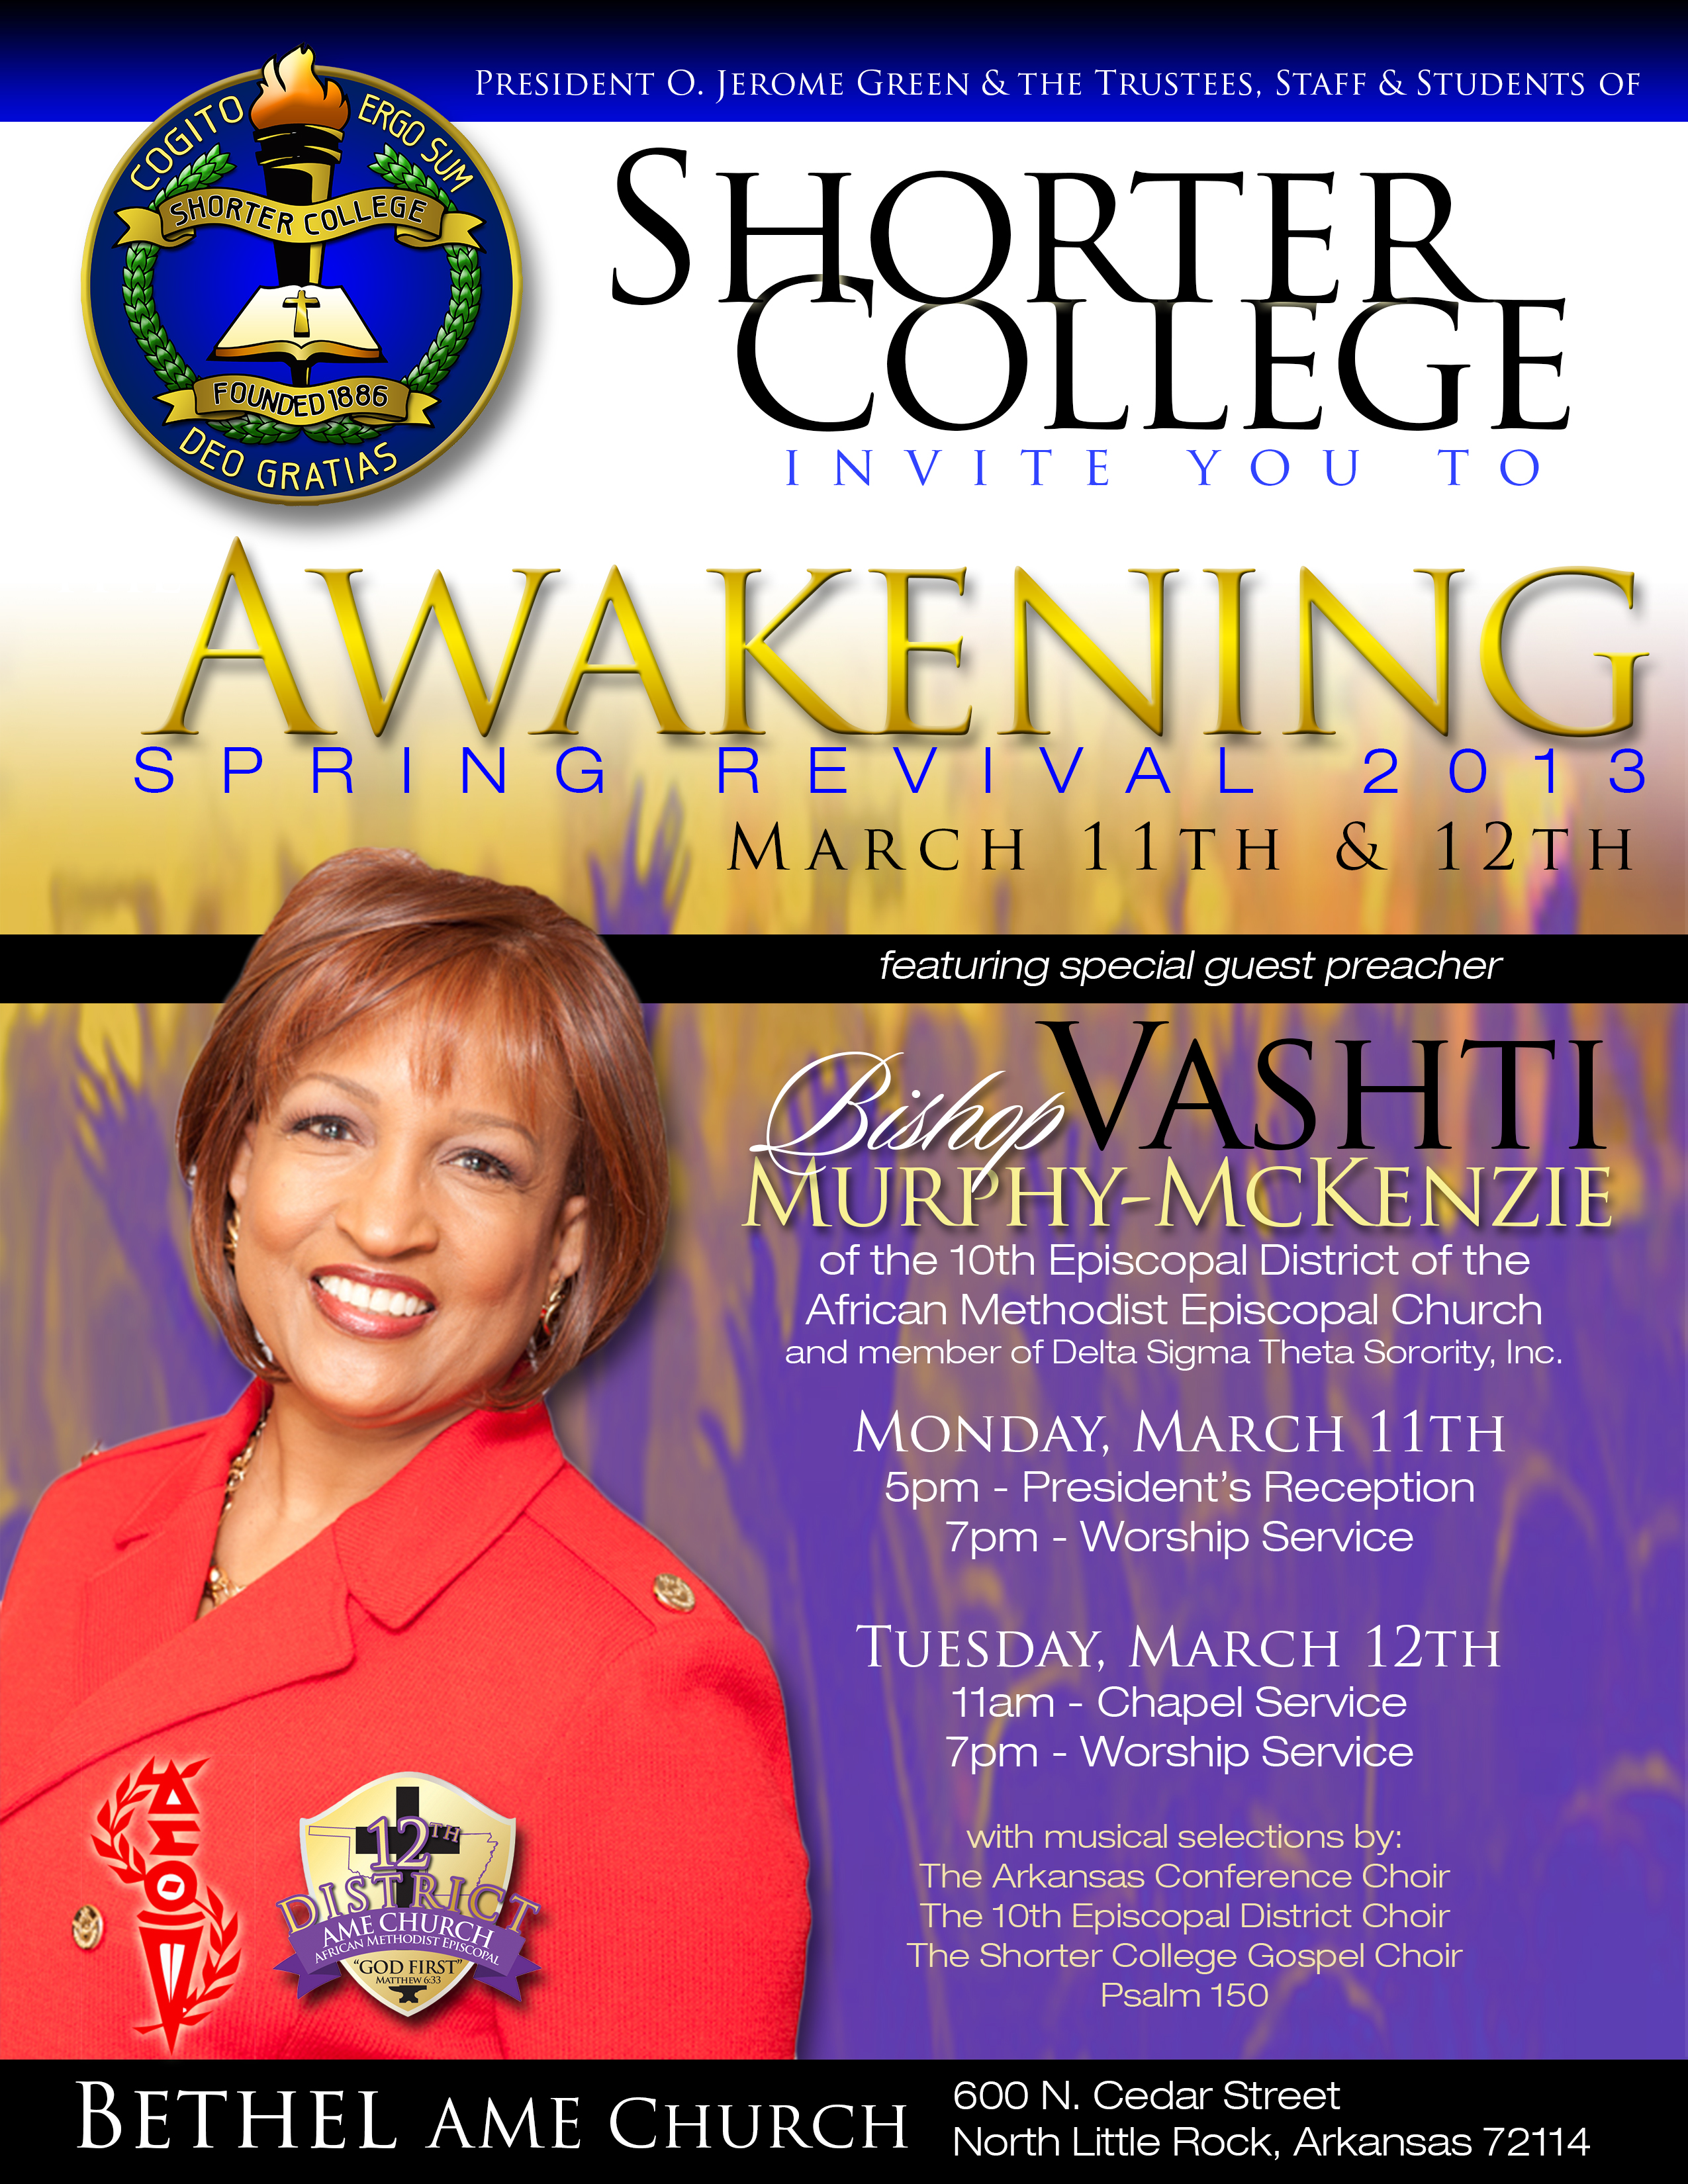 world renowned bishop to speak at shorter college  president o jerome green esq and shorter college kicks off religious emphasis week the awakening spring revival followed by a slate of community